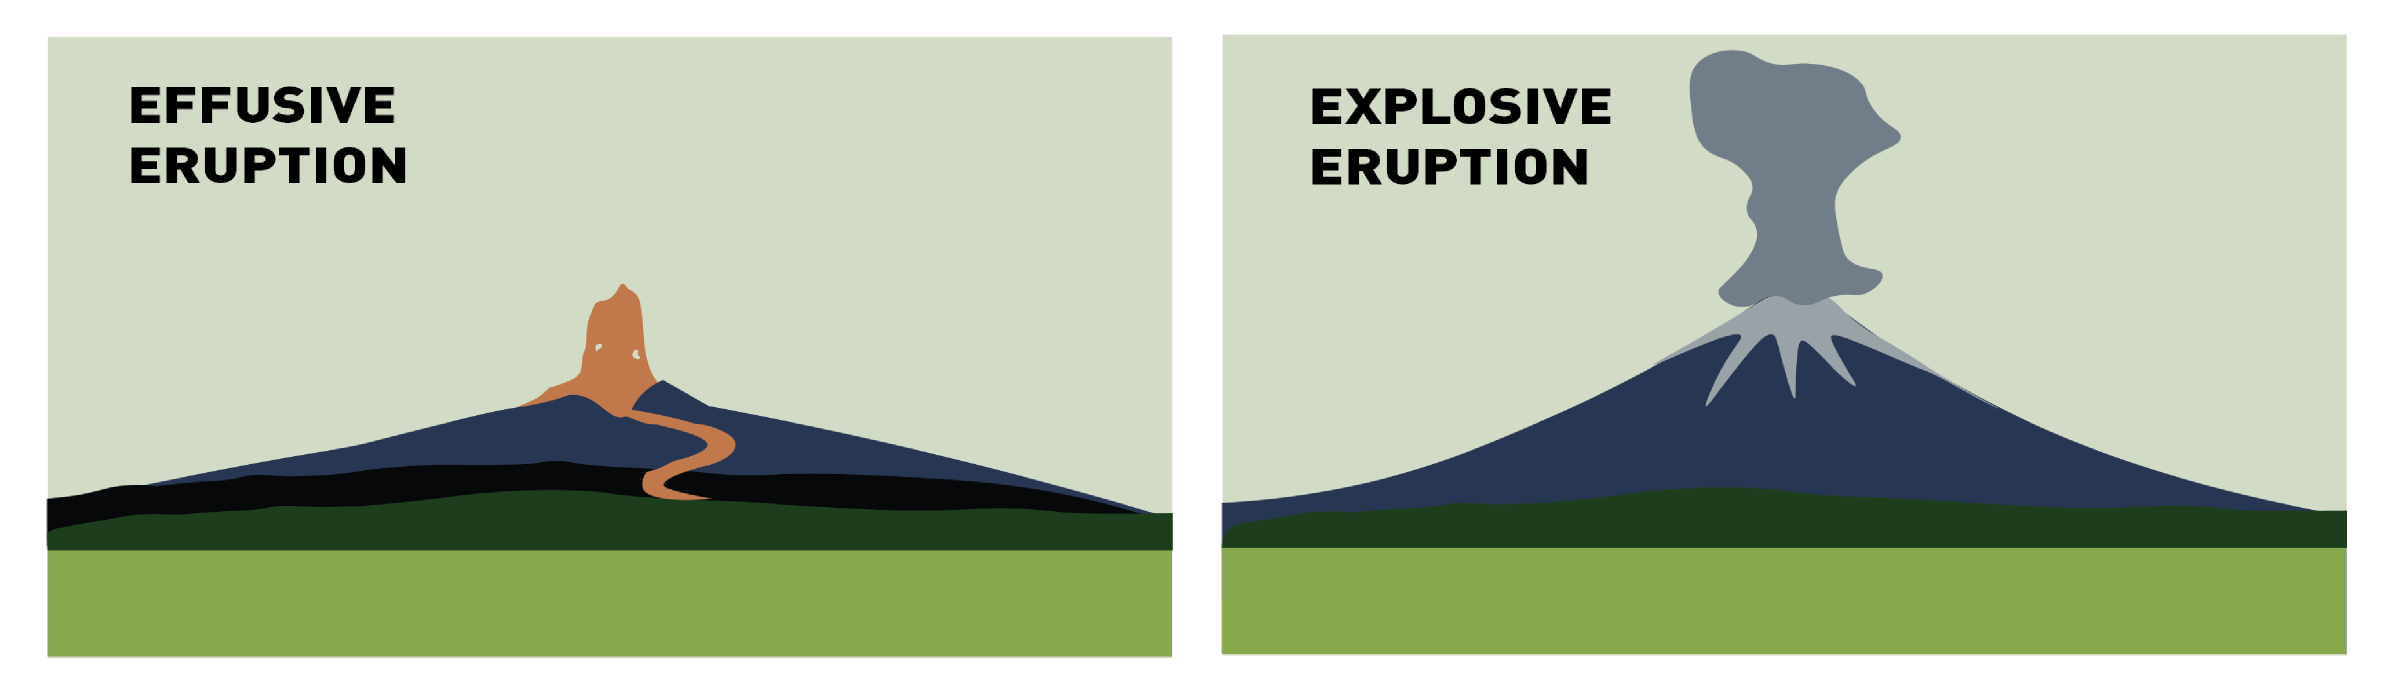 A schematic showing an effusive eruption with lava spreading across the ground as a flow, and an explosive eruption with magma fragmenting into ash creating a plume.